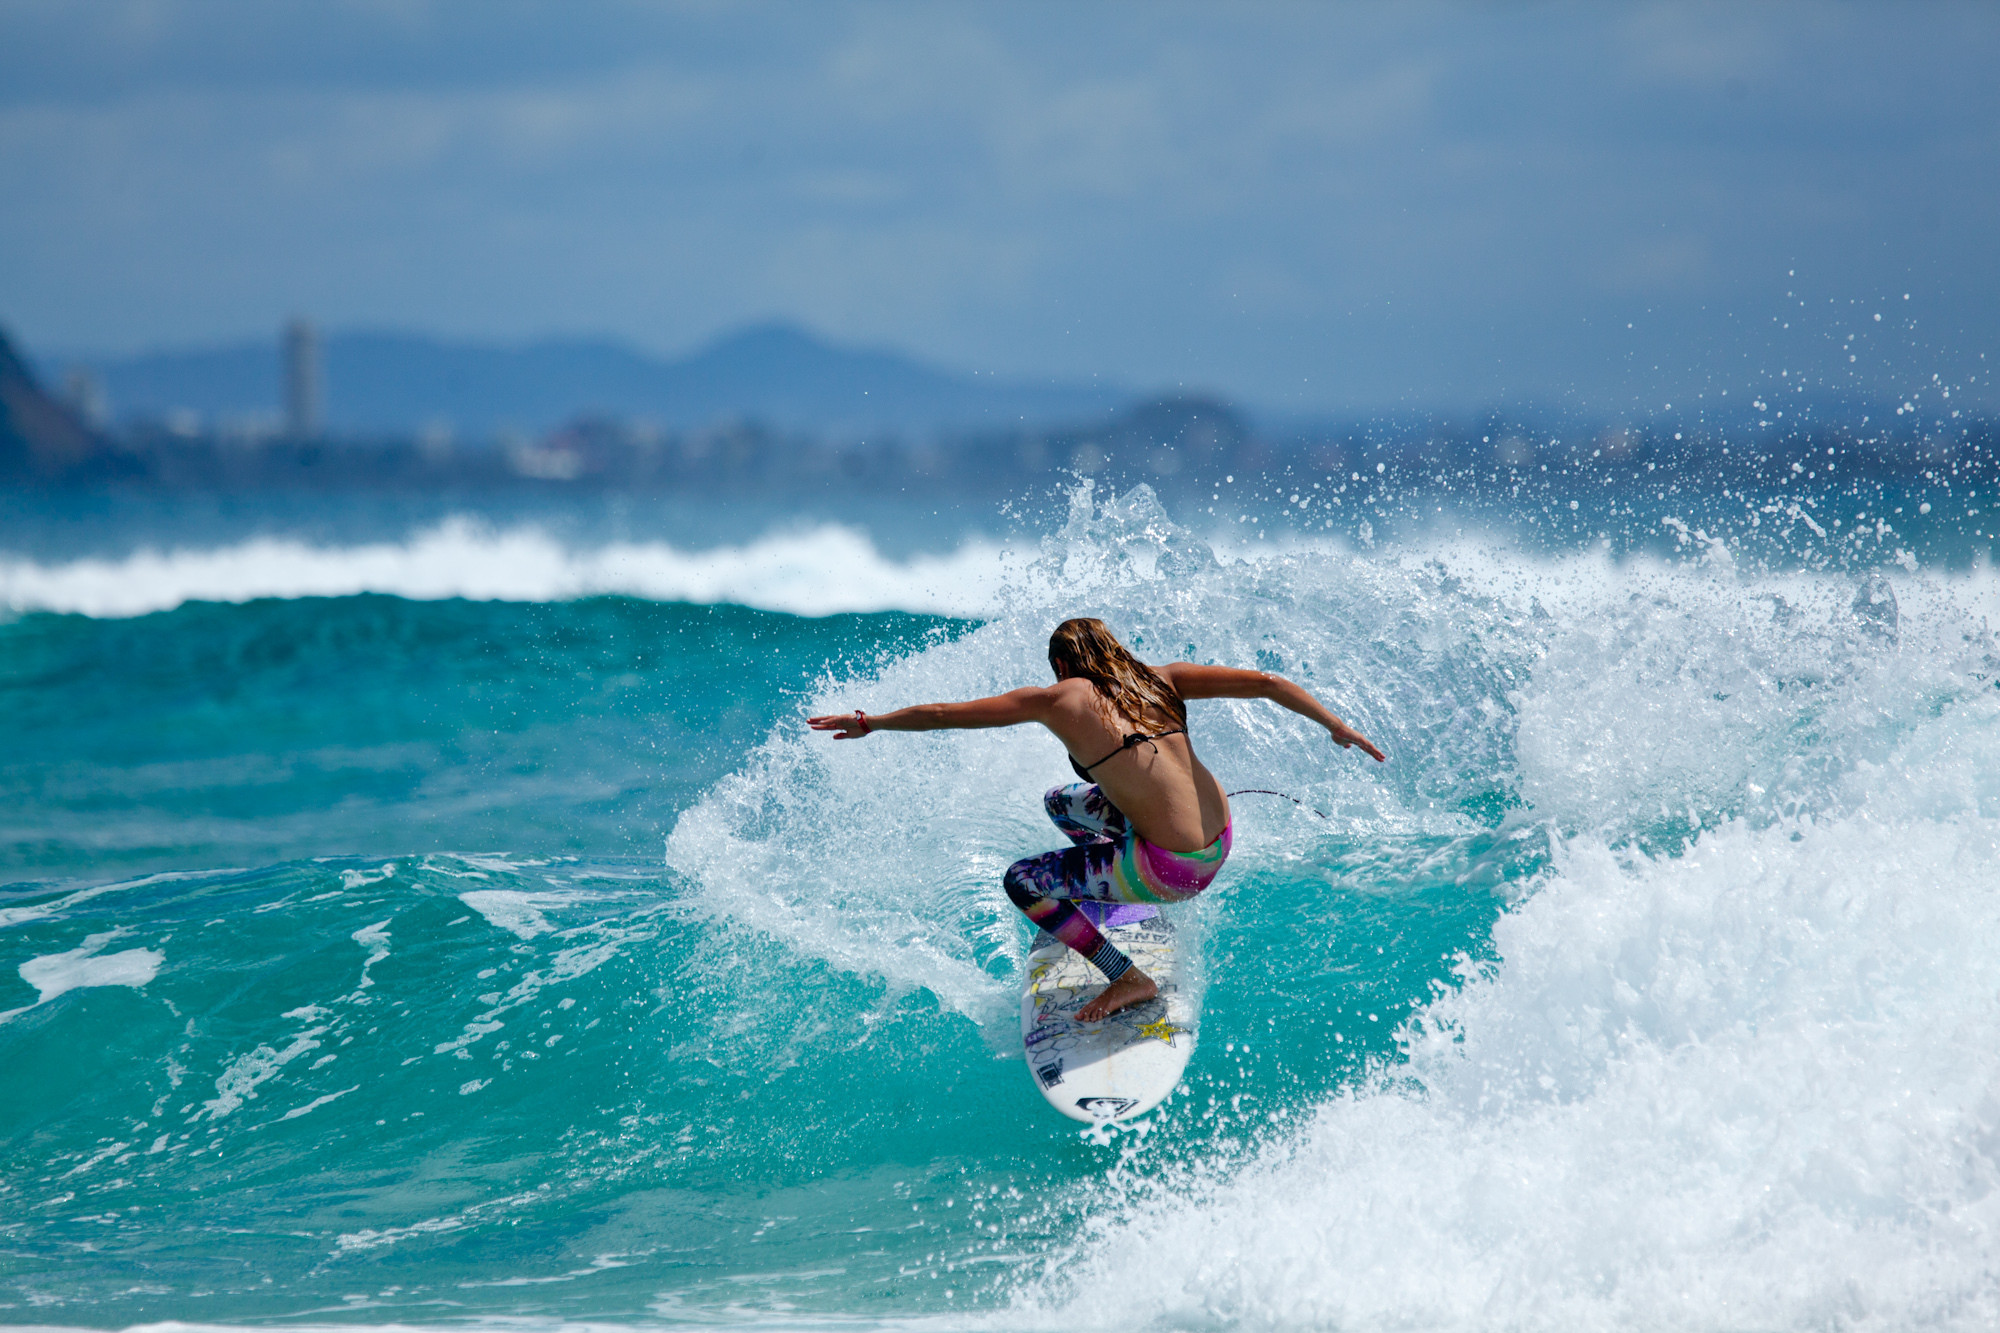 2000x1333 New Surfing High Quality Wallpapers 2015 ...